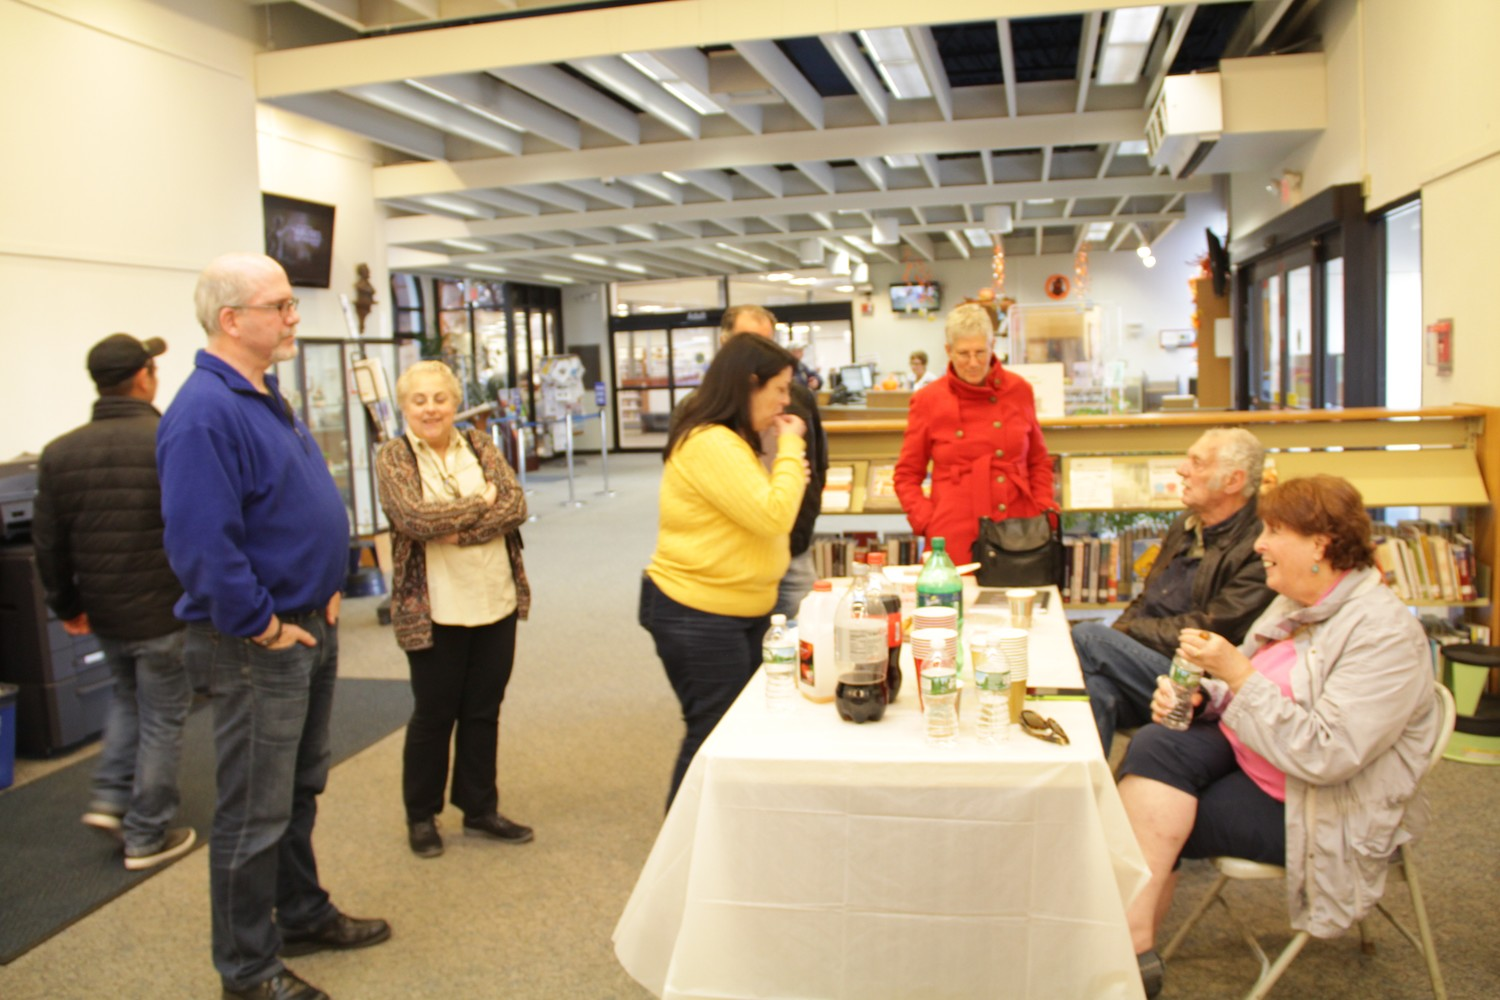 The Arts Council at Freeport held a reception to honor Freeport artist, Alexandra Marinaccio on Nov. 4 at the Freeport Memorial Library.